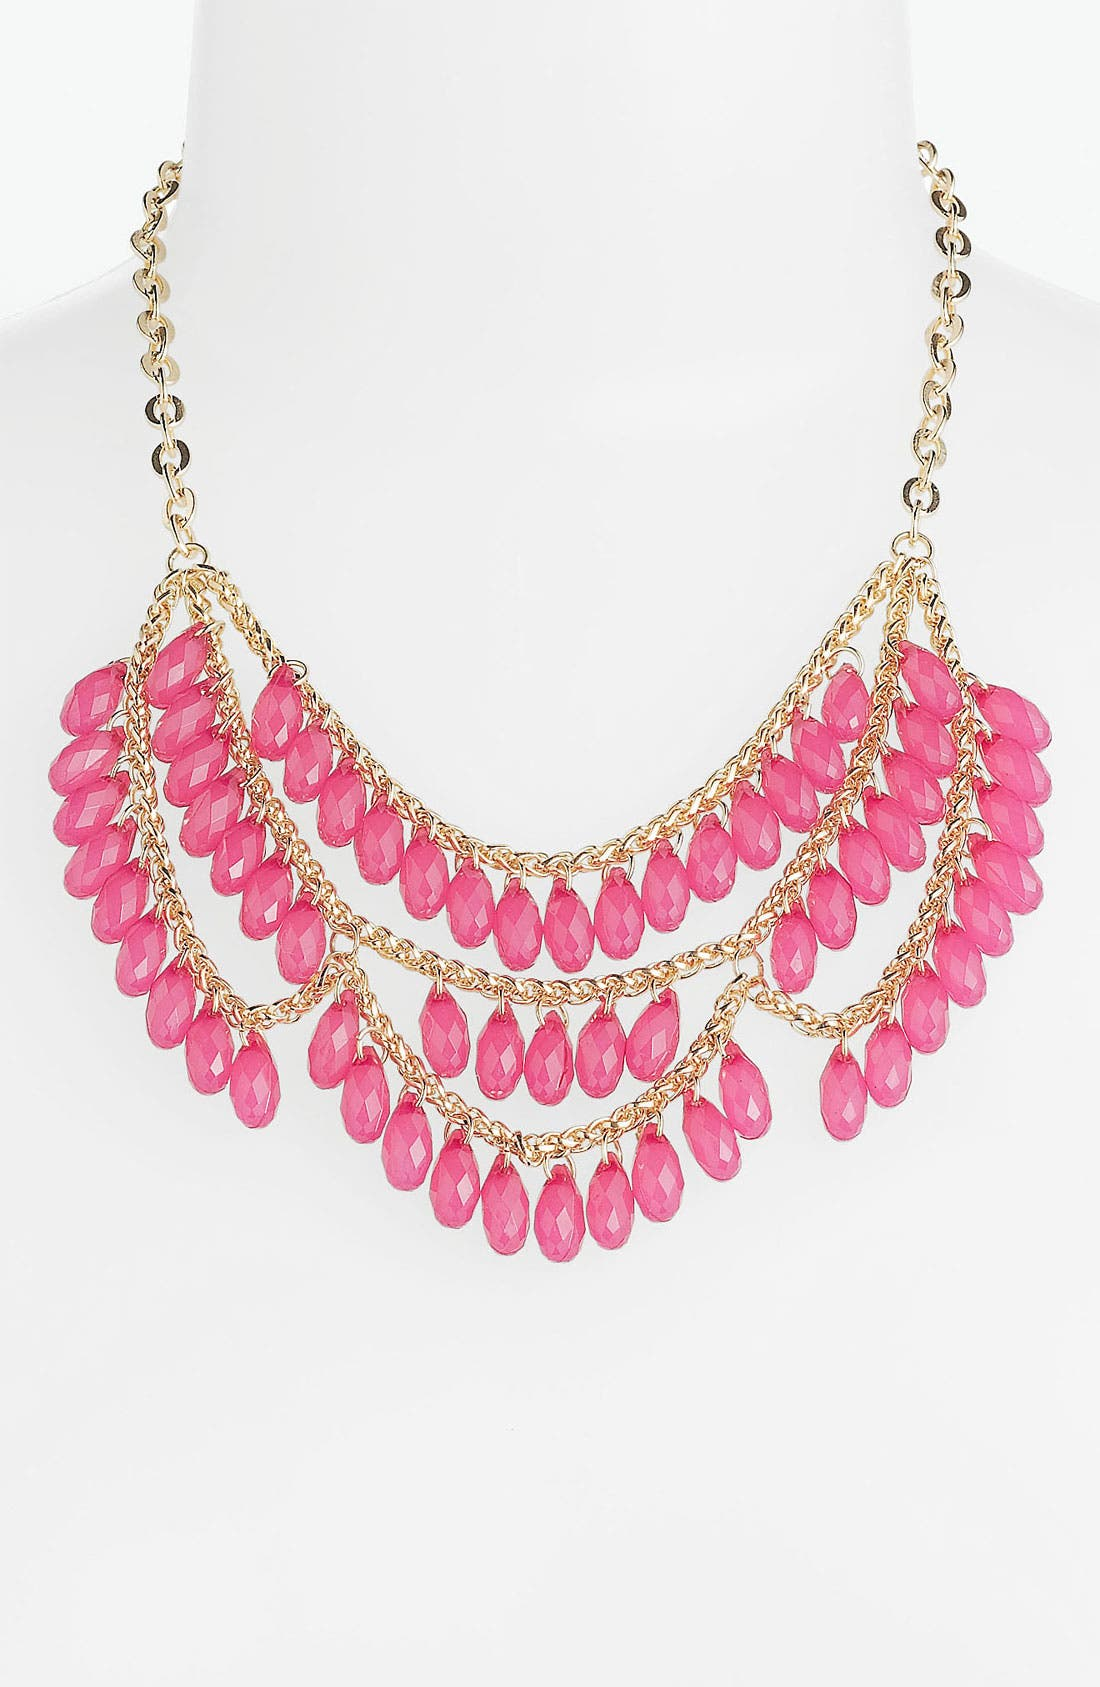 Main Image - Stephan & Co. Teardrop Bib Necklace